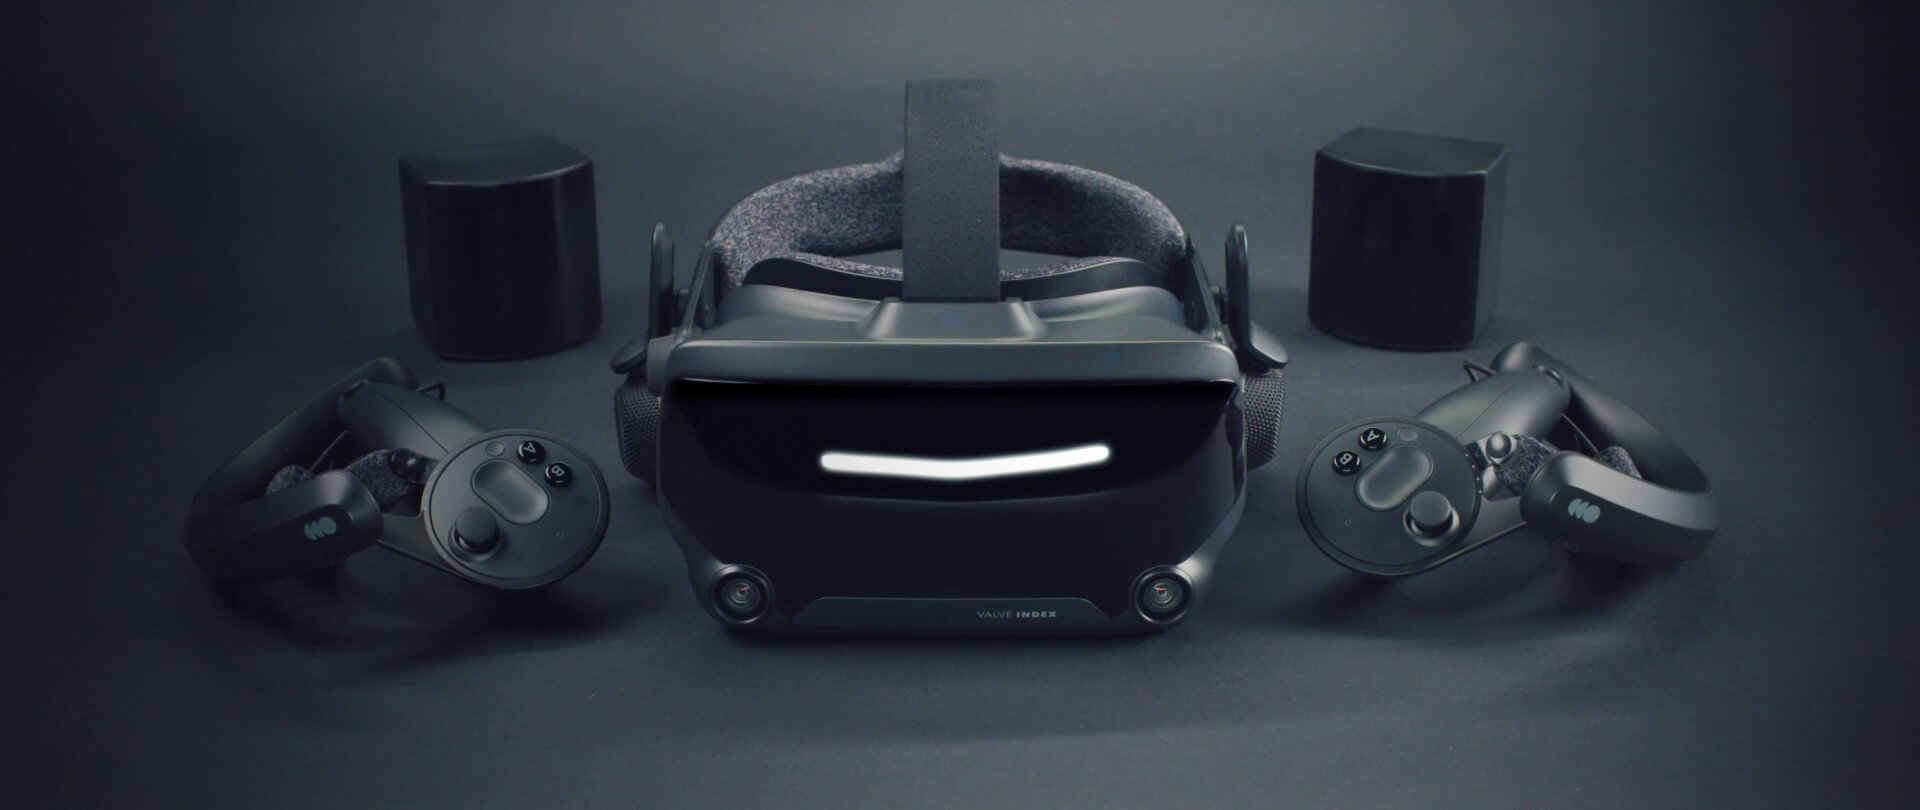 Valve Index casque VR